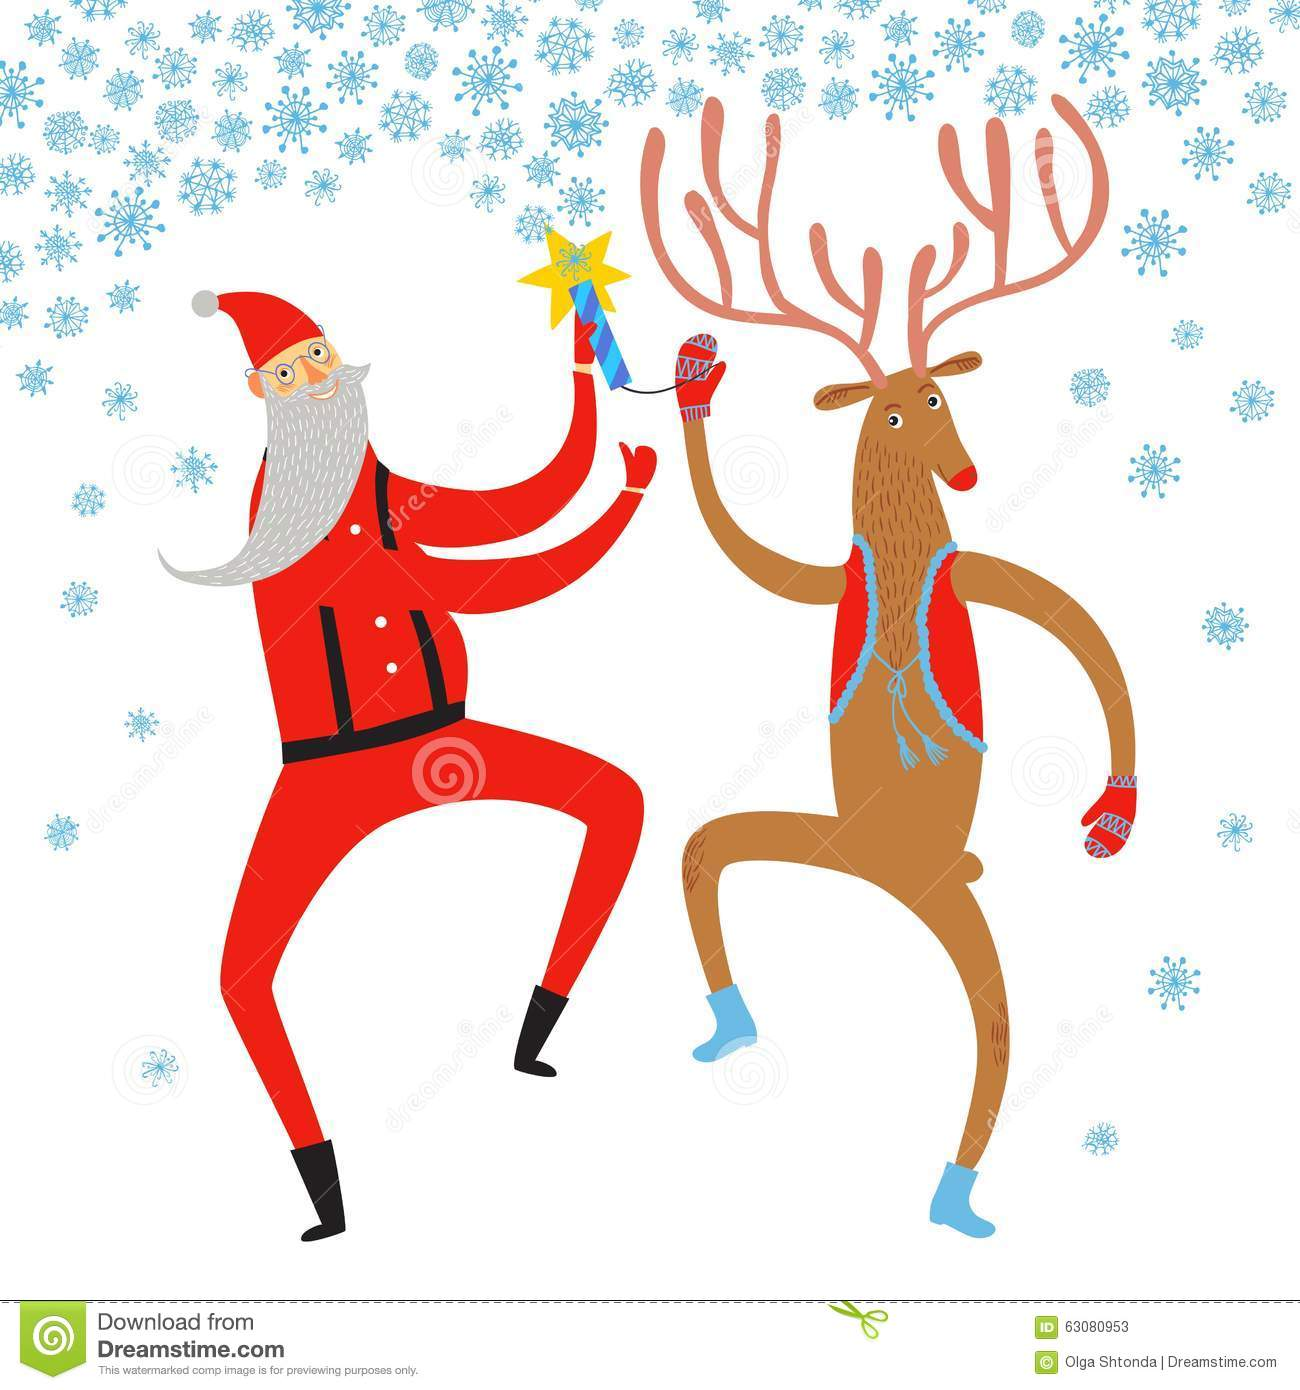 Christmas Dancing Santa.Dancing Santa Claus And Deer Illustration Stock Illustration